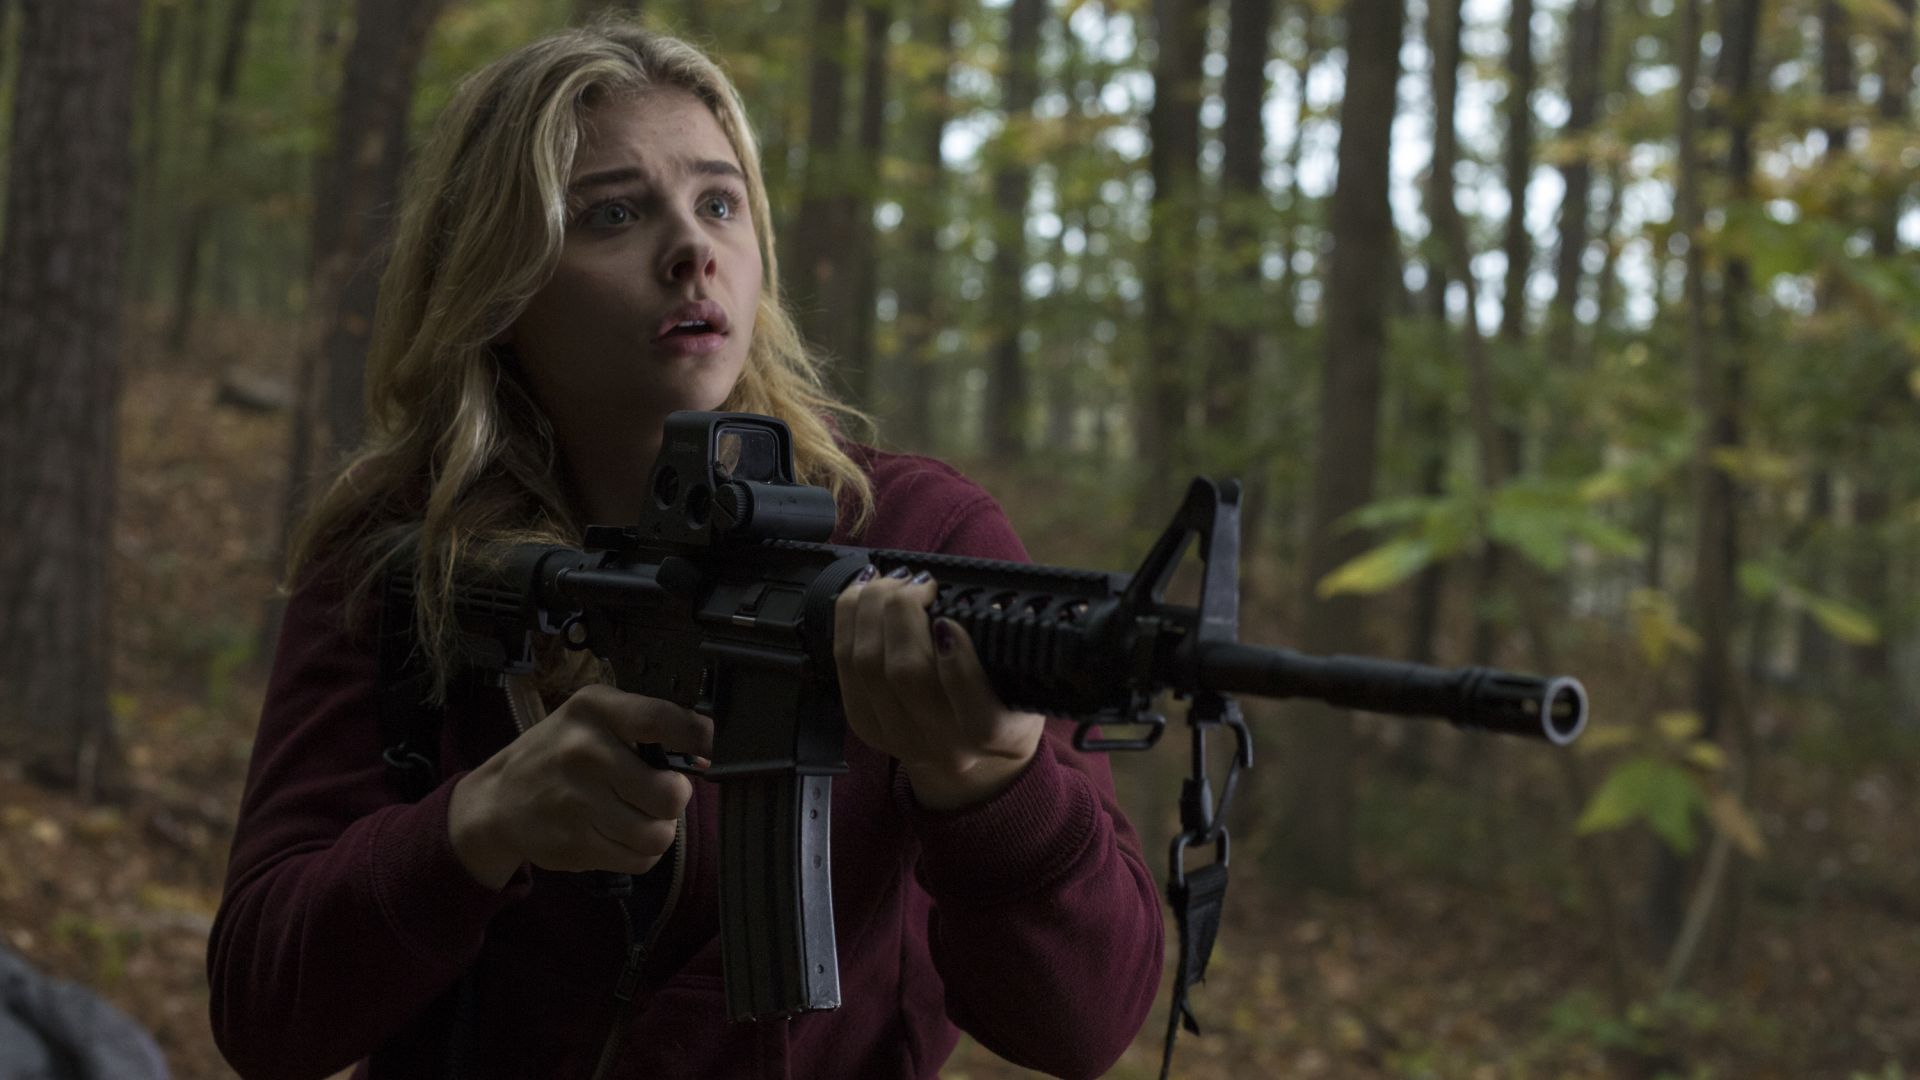 The 5th wave, Best movies, Chloe Moretz